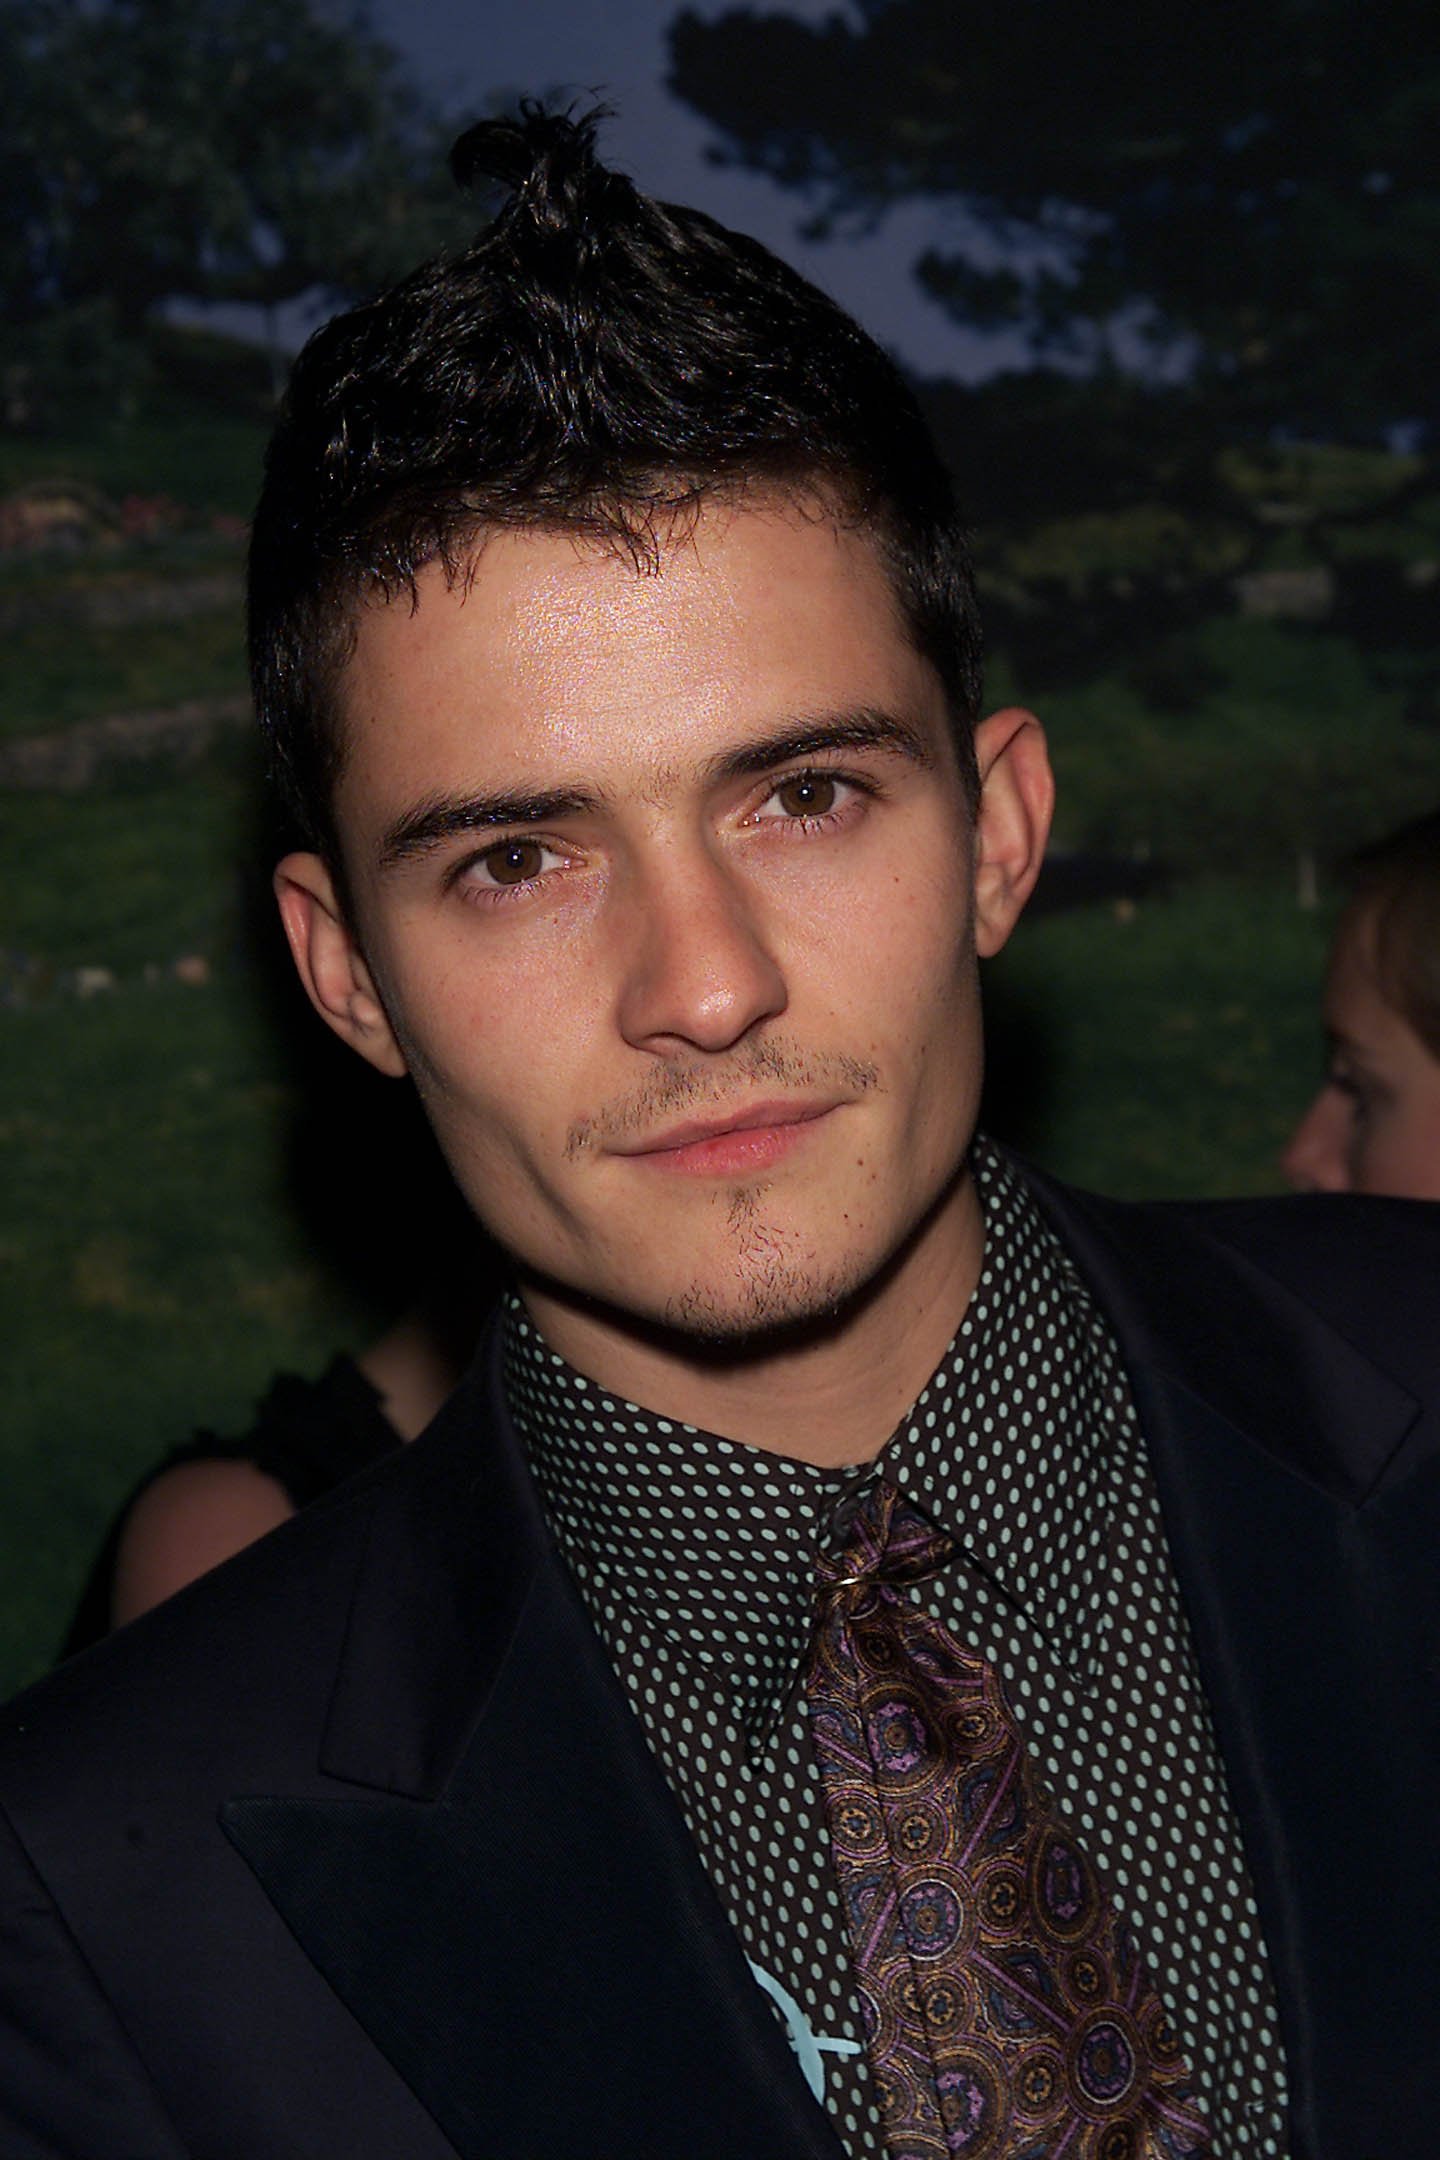 In Case You Forgot Orlando Bloom Was Big Into Checkered